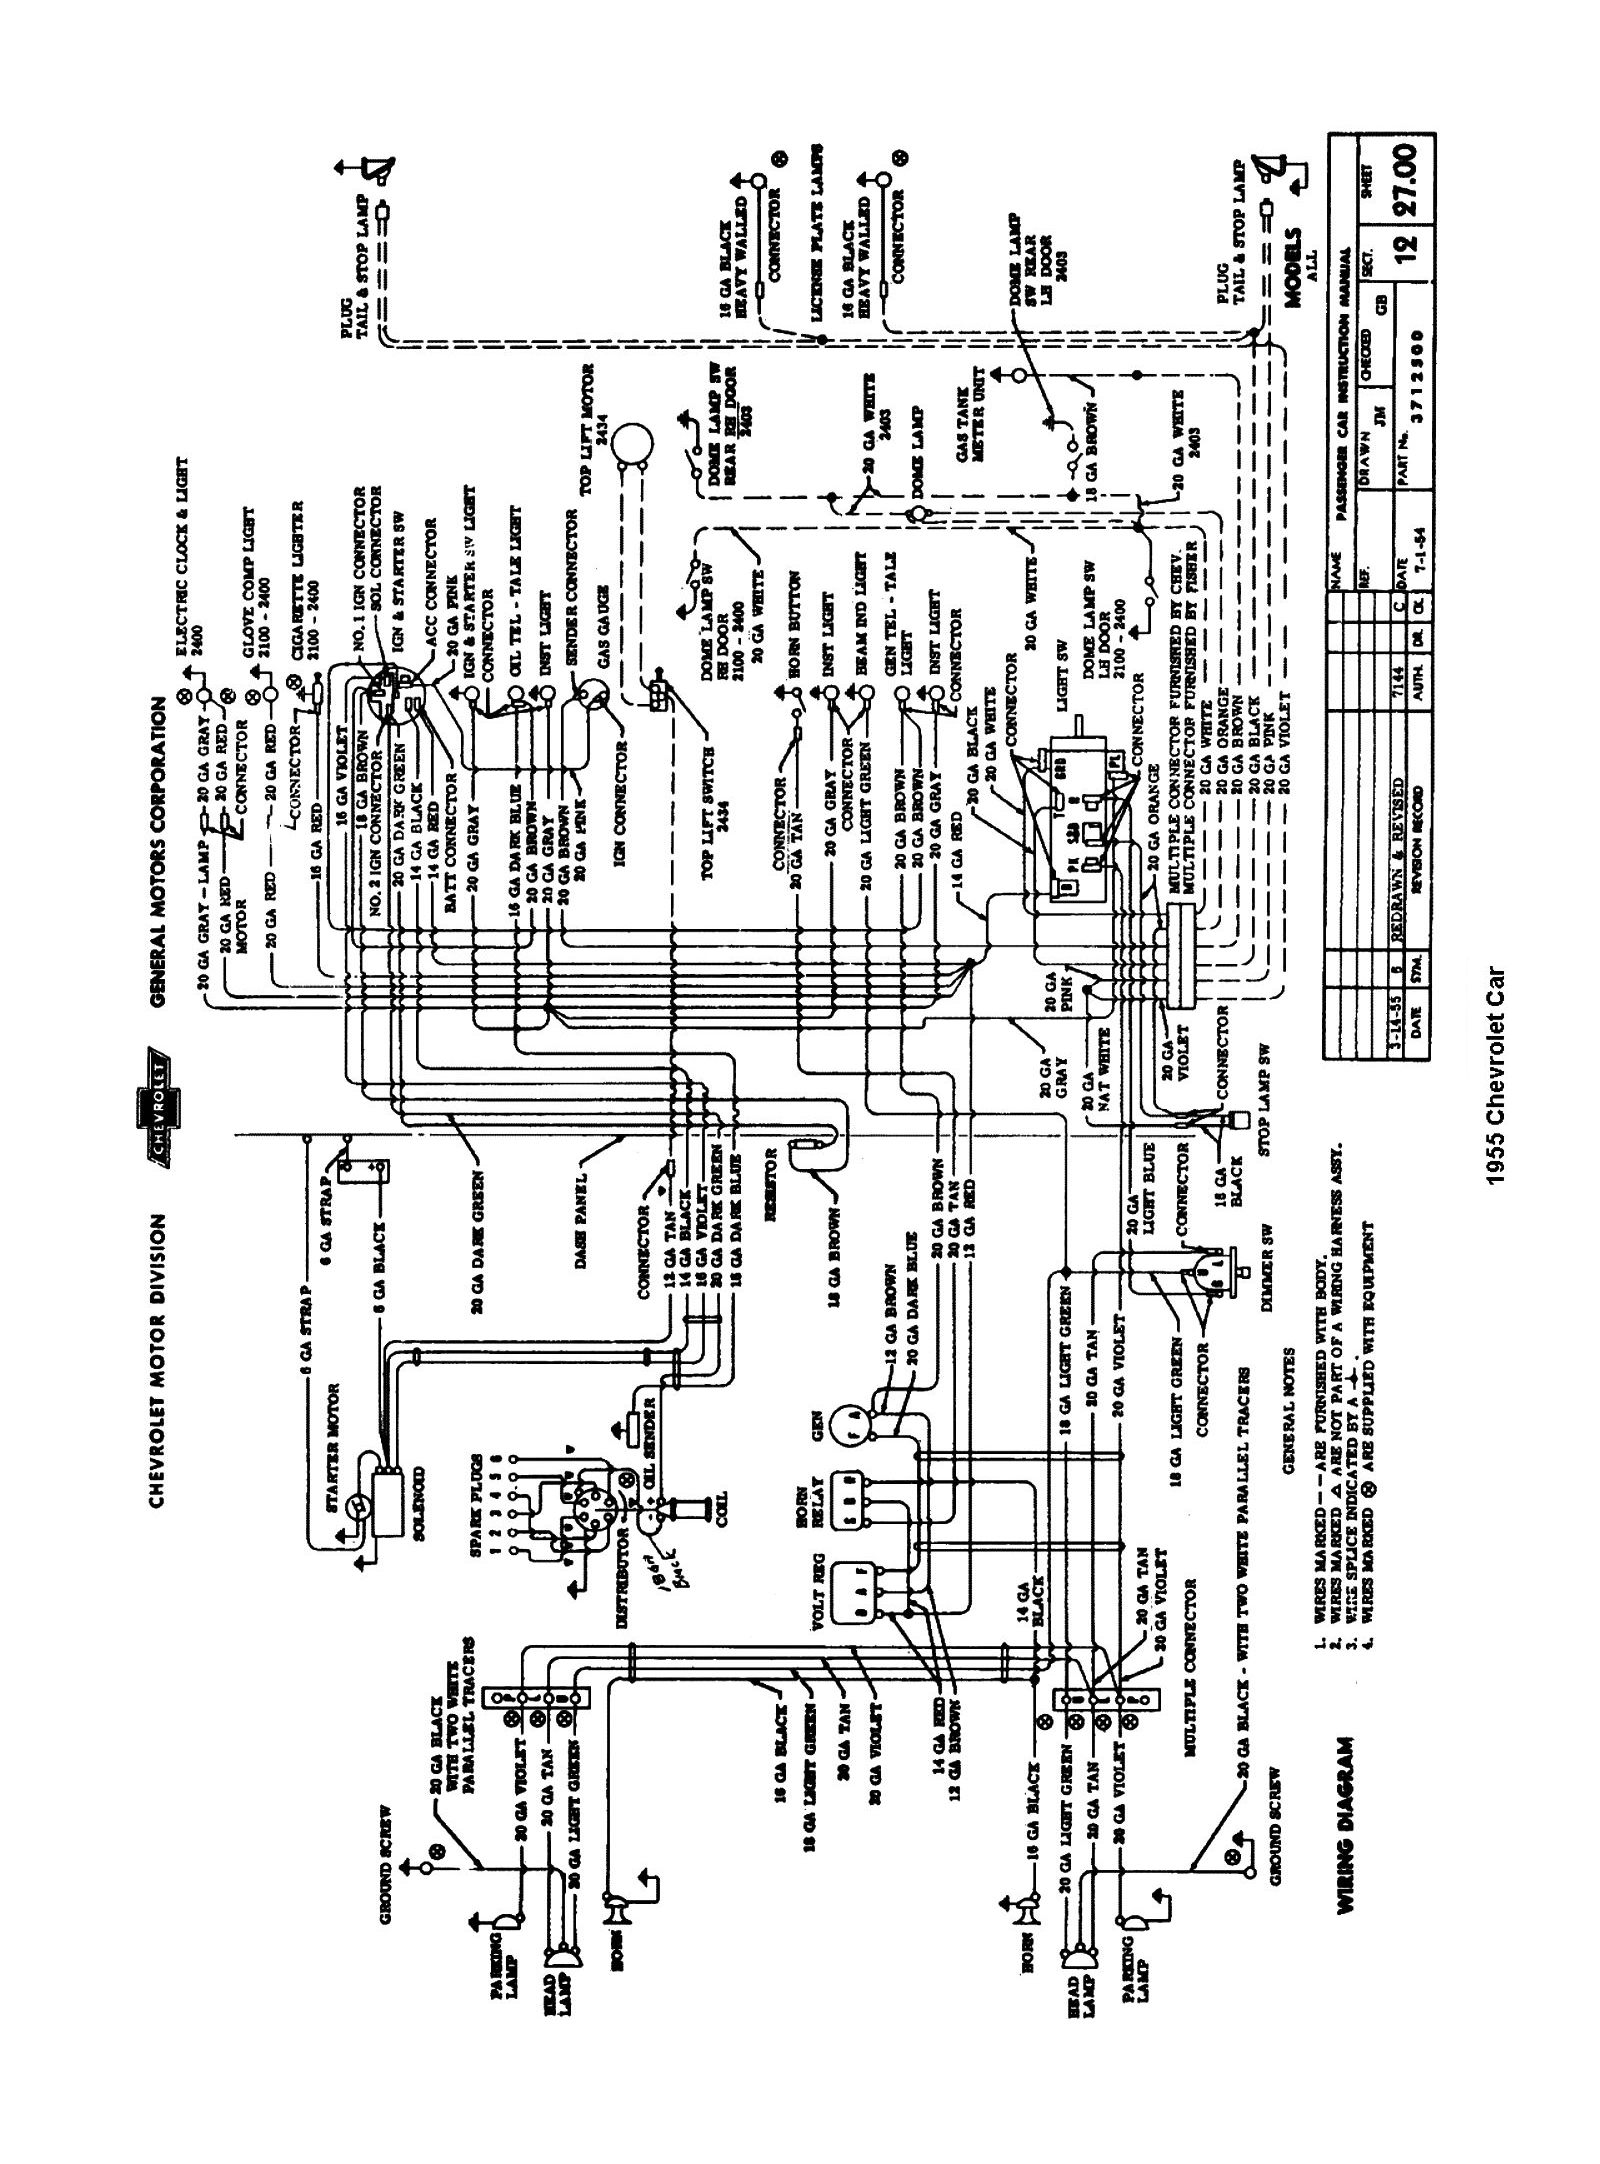 to a 38 chevy headlight switch wire diagram digital resources Chevrolet Headlight Switch Wiring Diagram Free Download